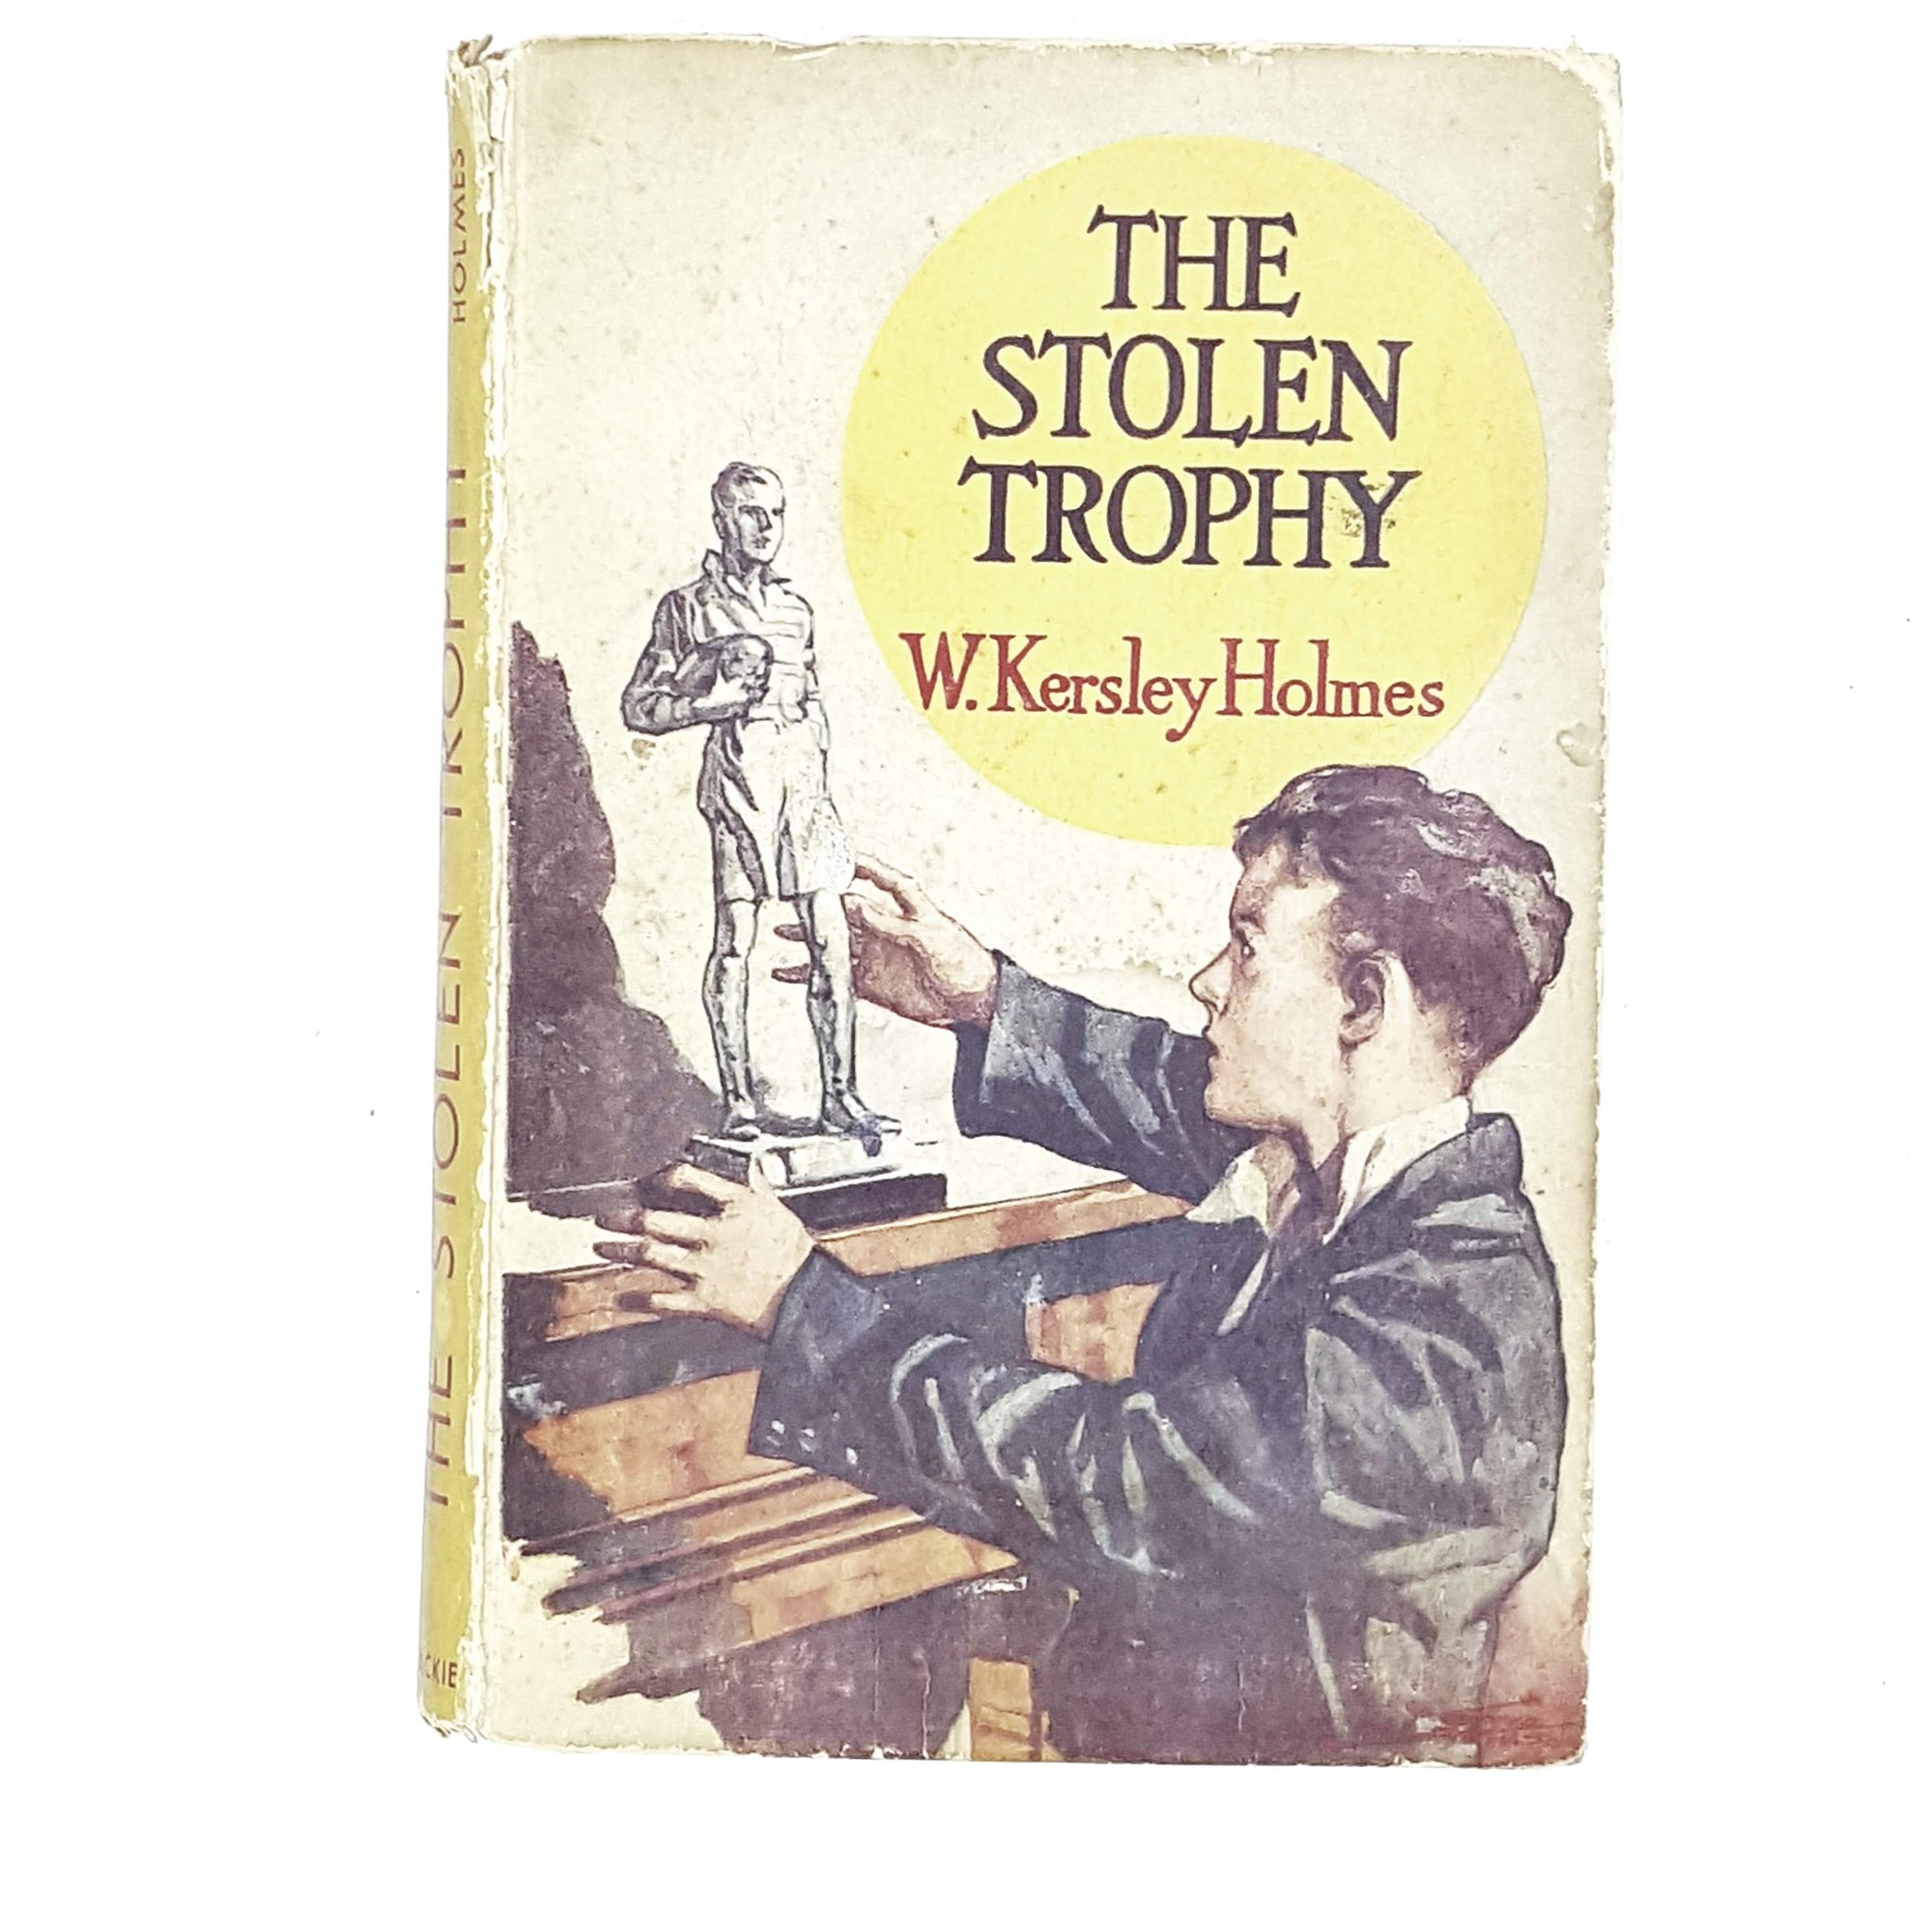 The Stolen Trophy by W. Kersley Holmes